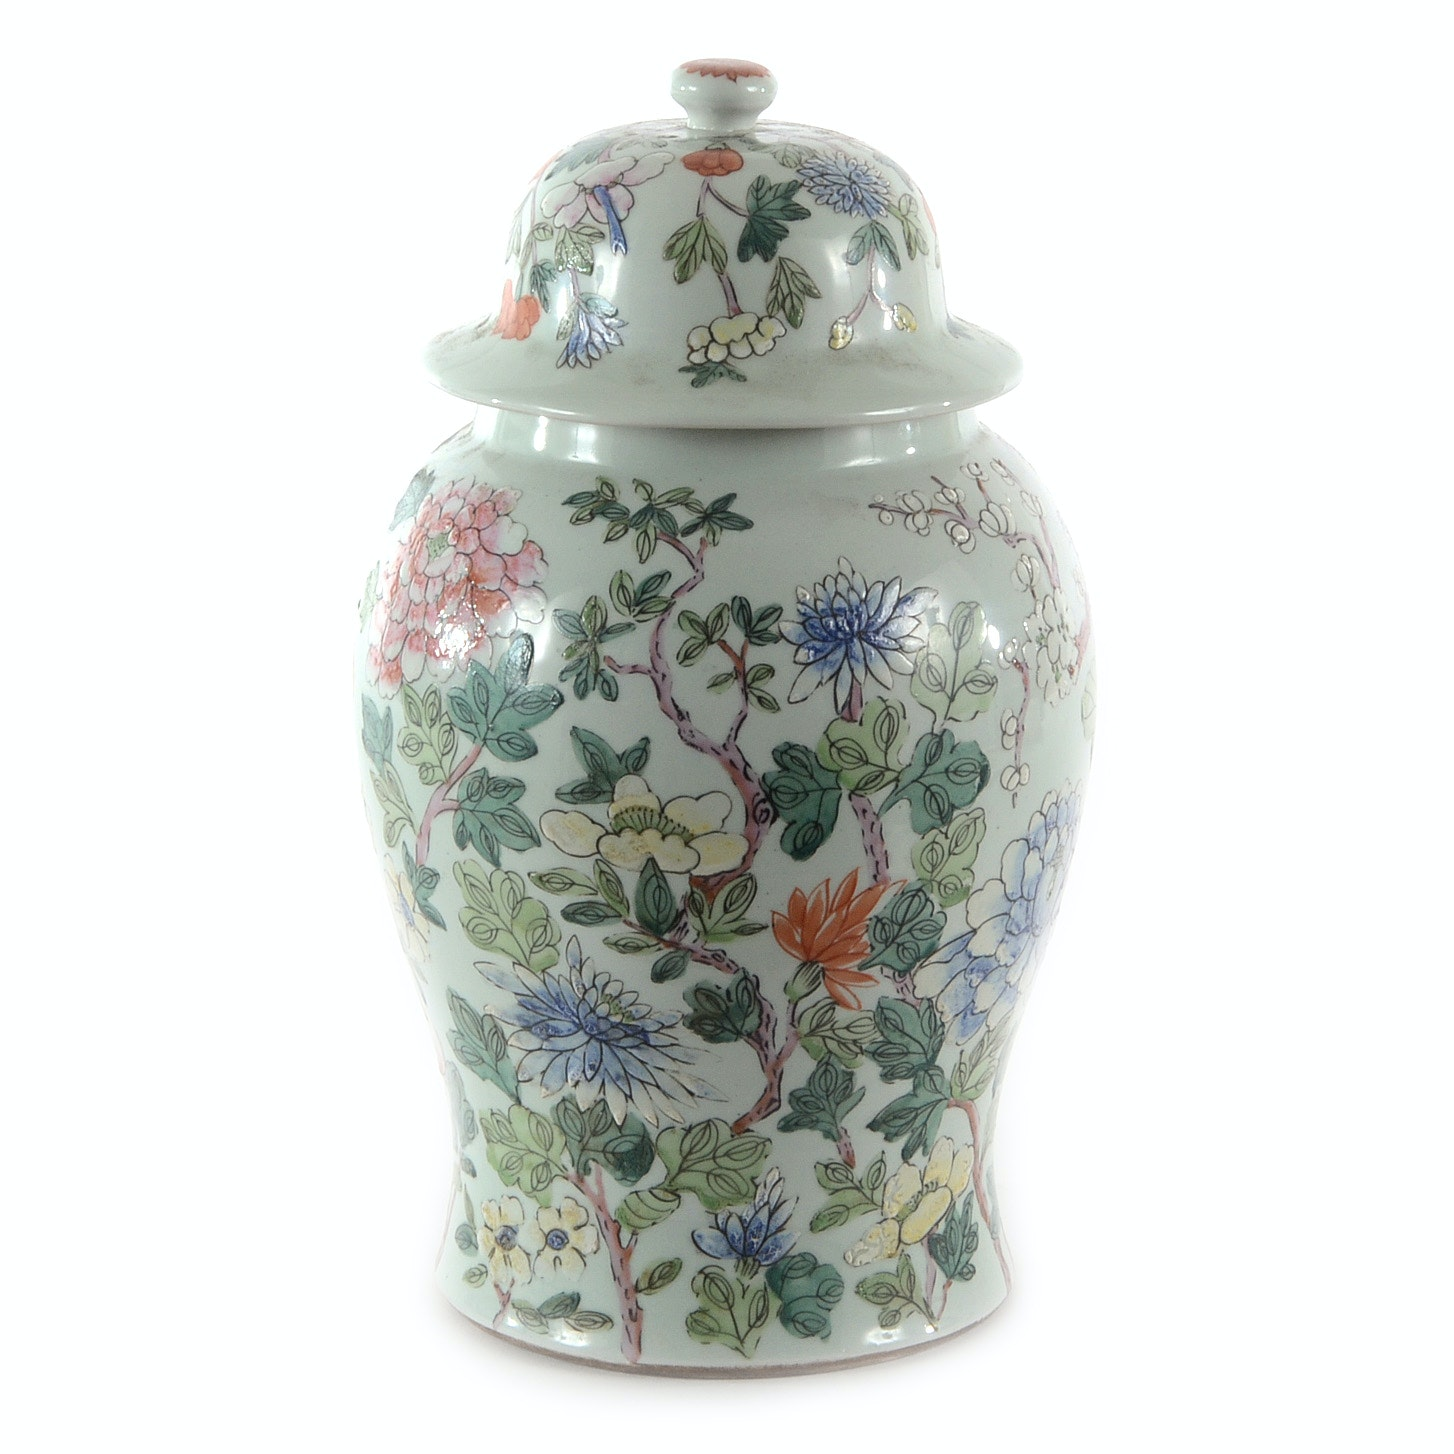 Hand Decorated Chinese Covered Jar